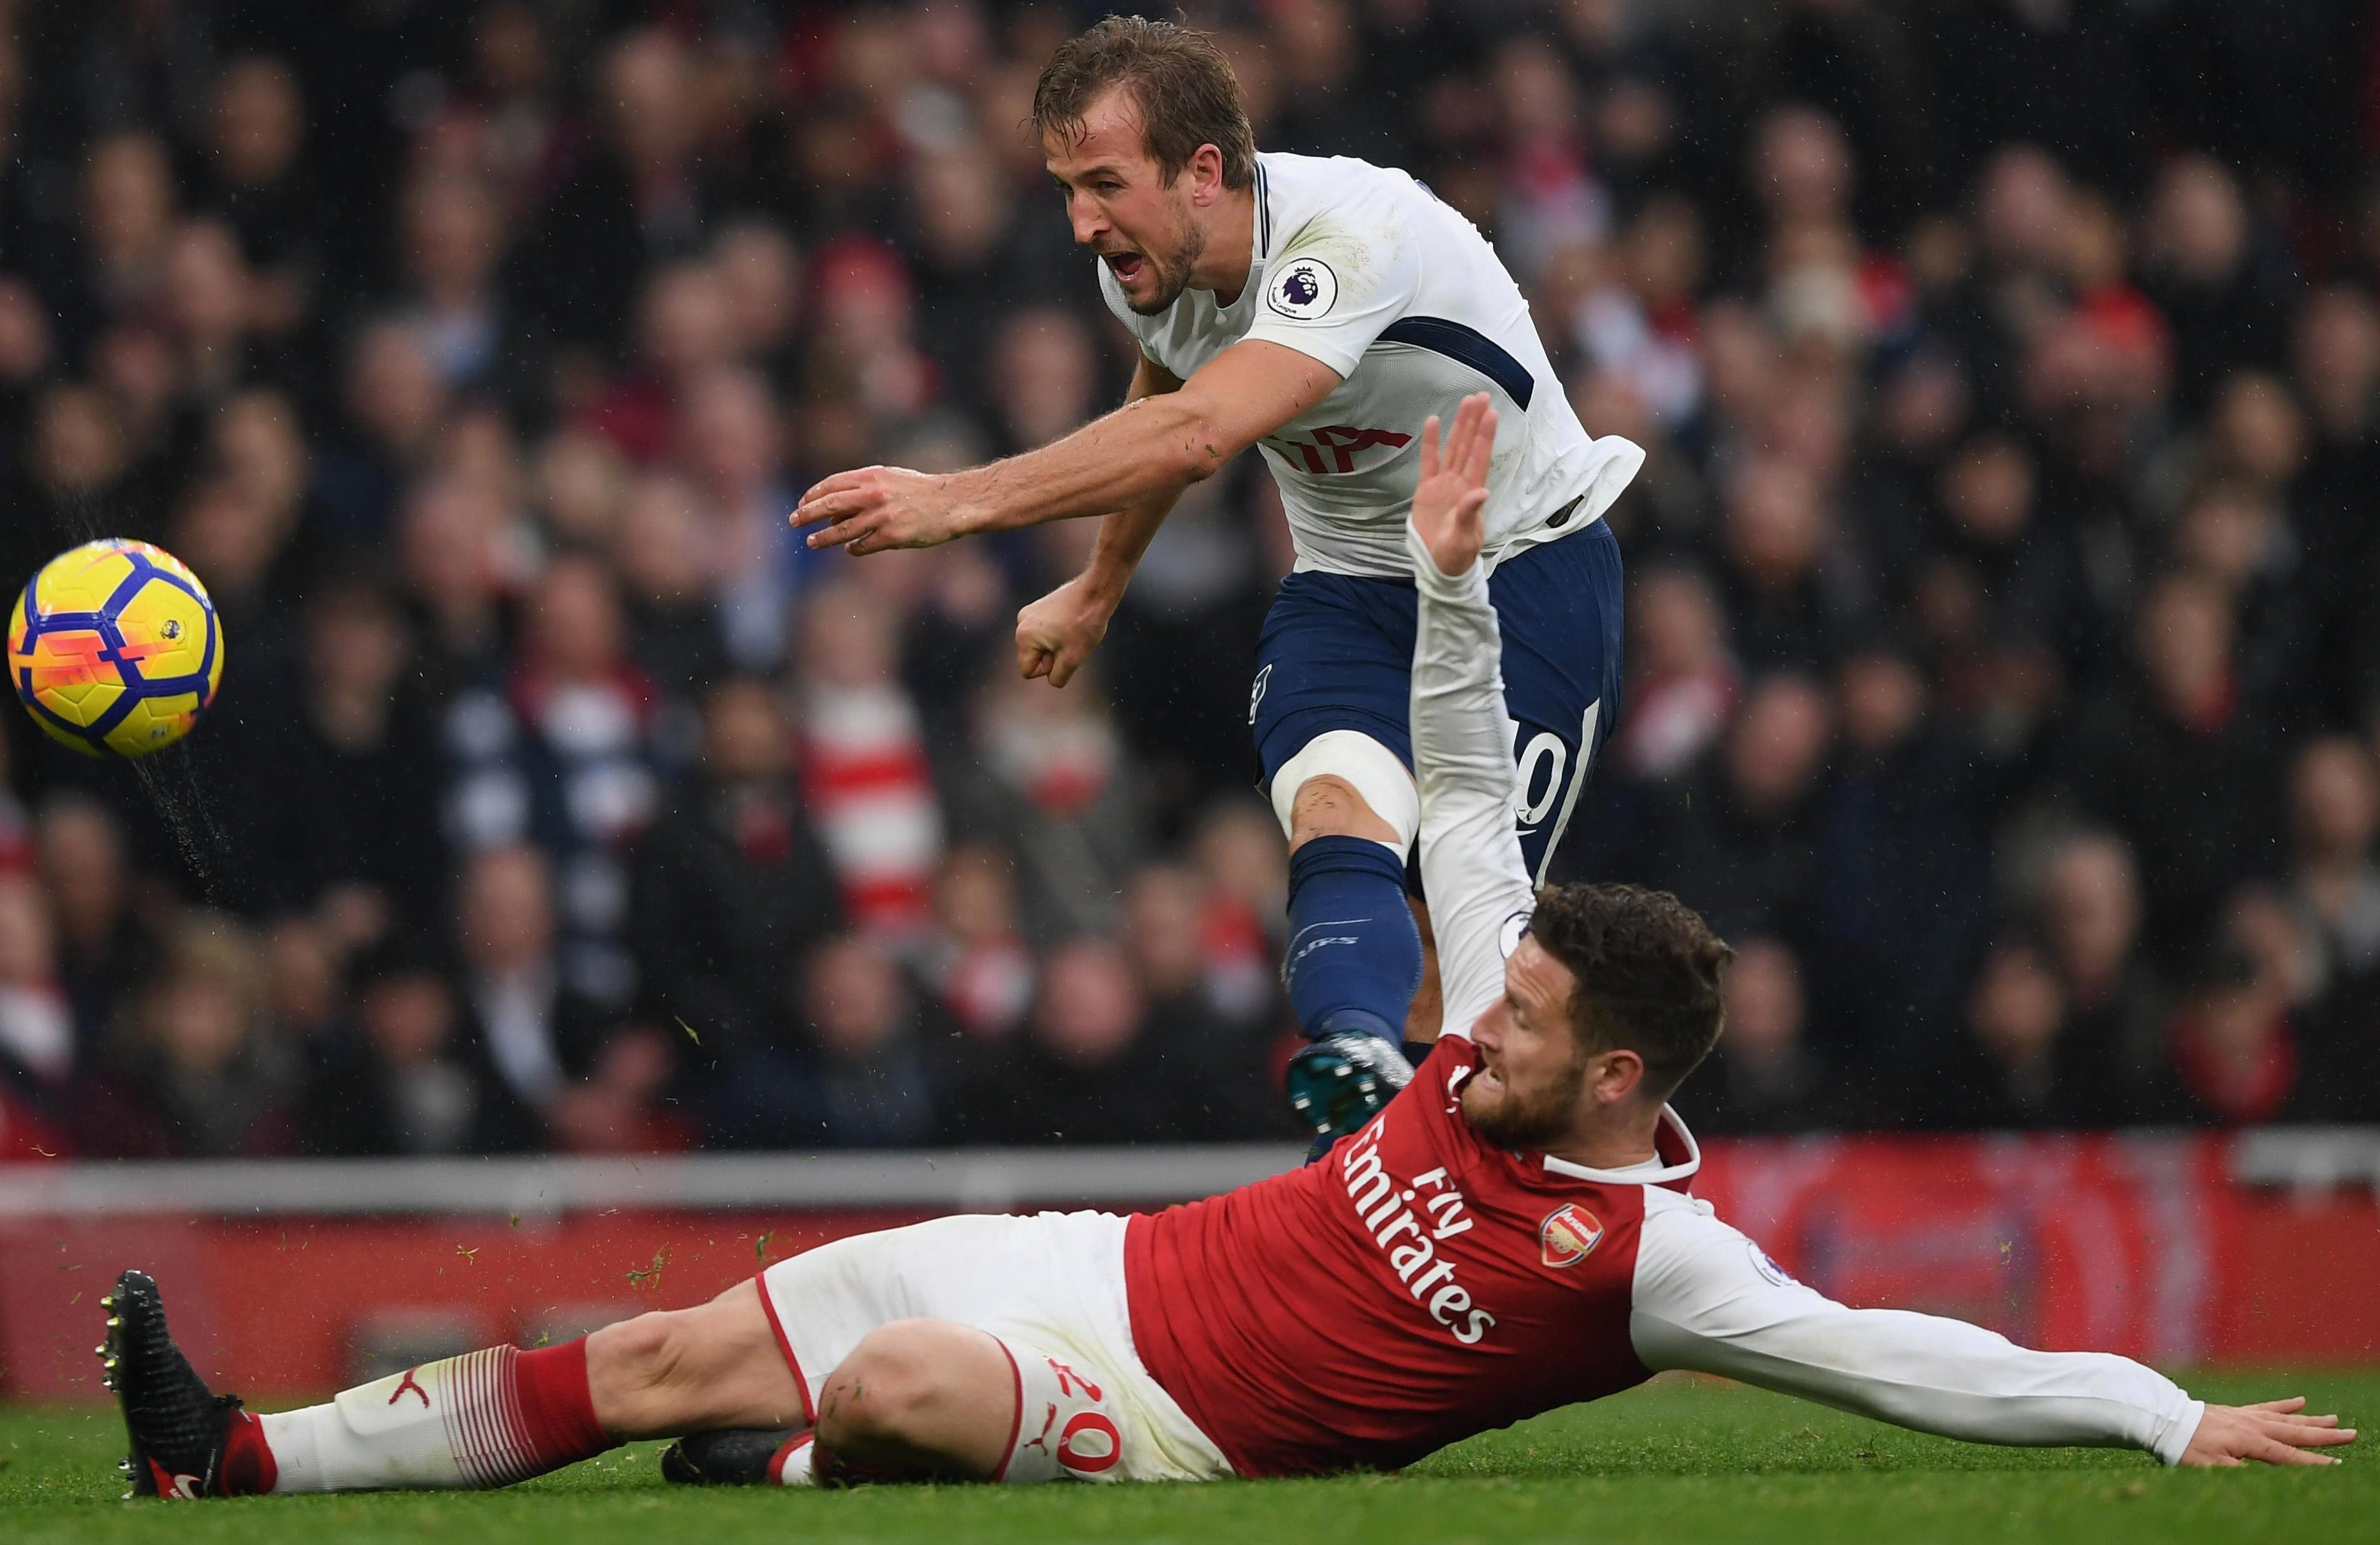 Kane has been a thorn in Arsenal's side ever since